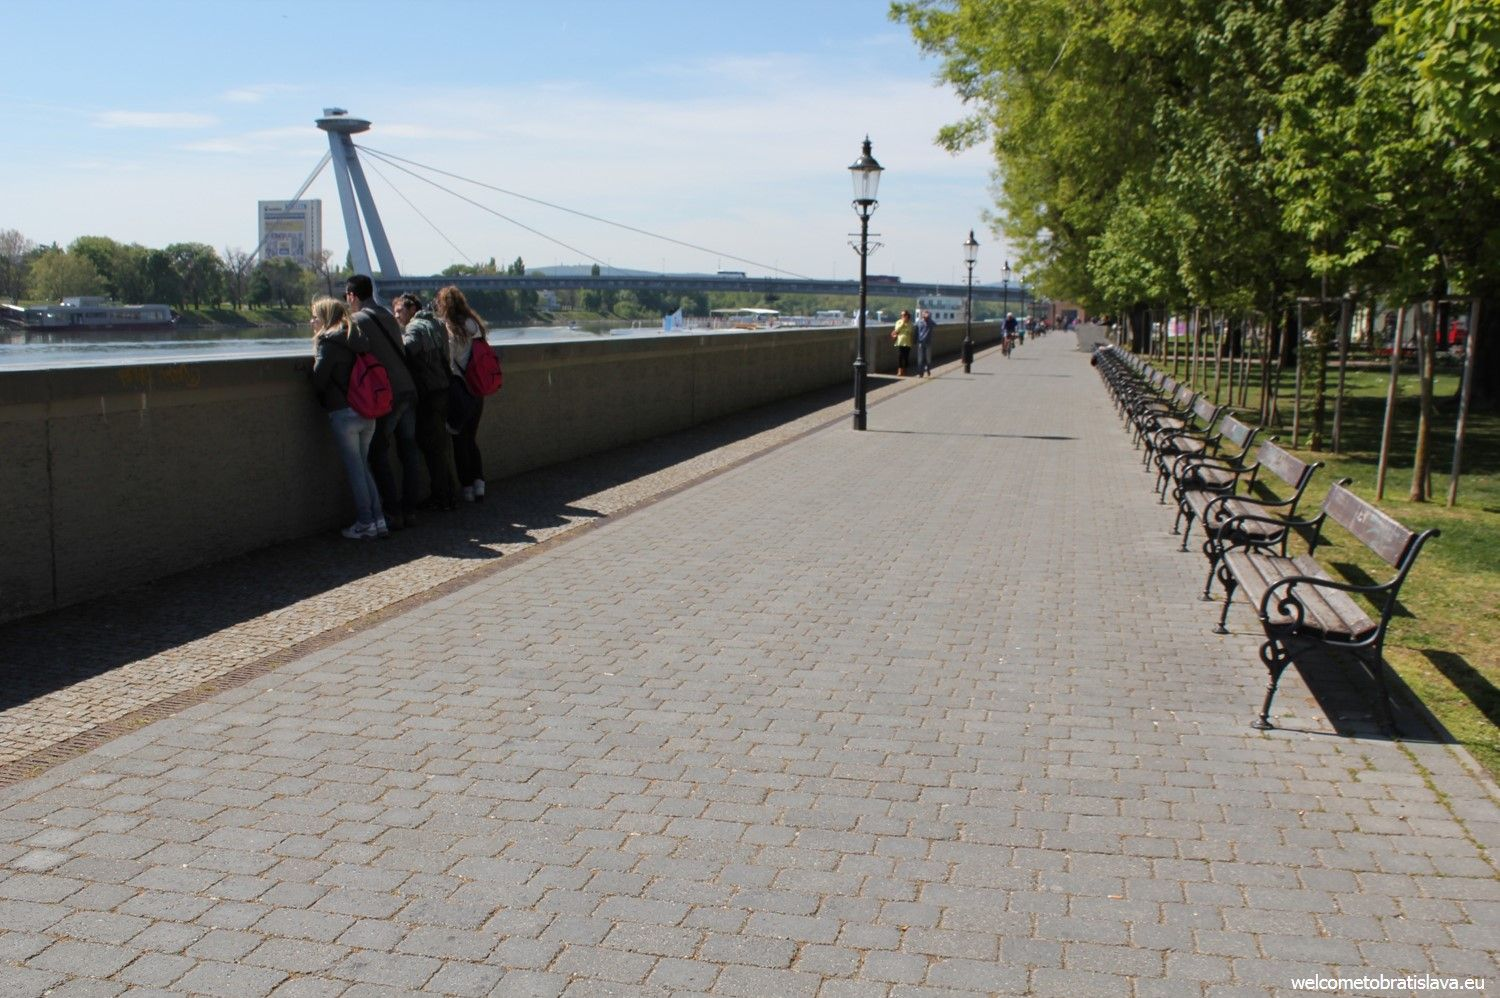 The path along the Danube